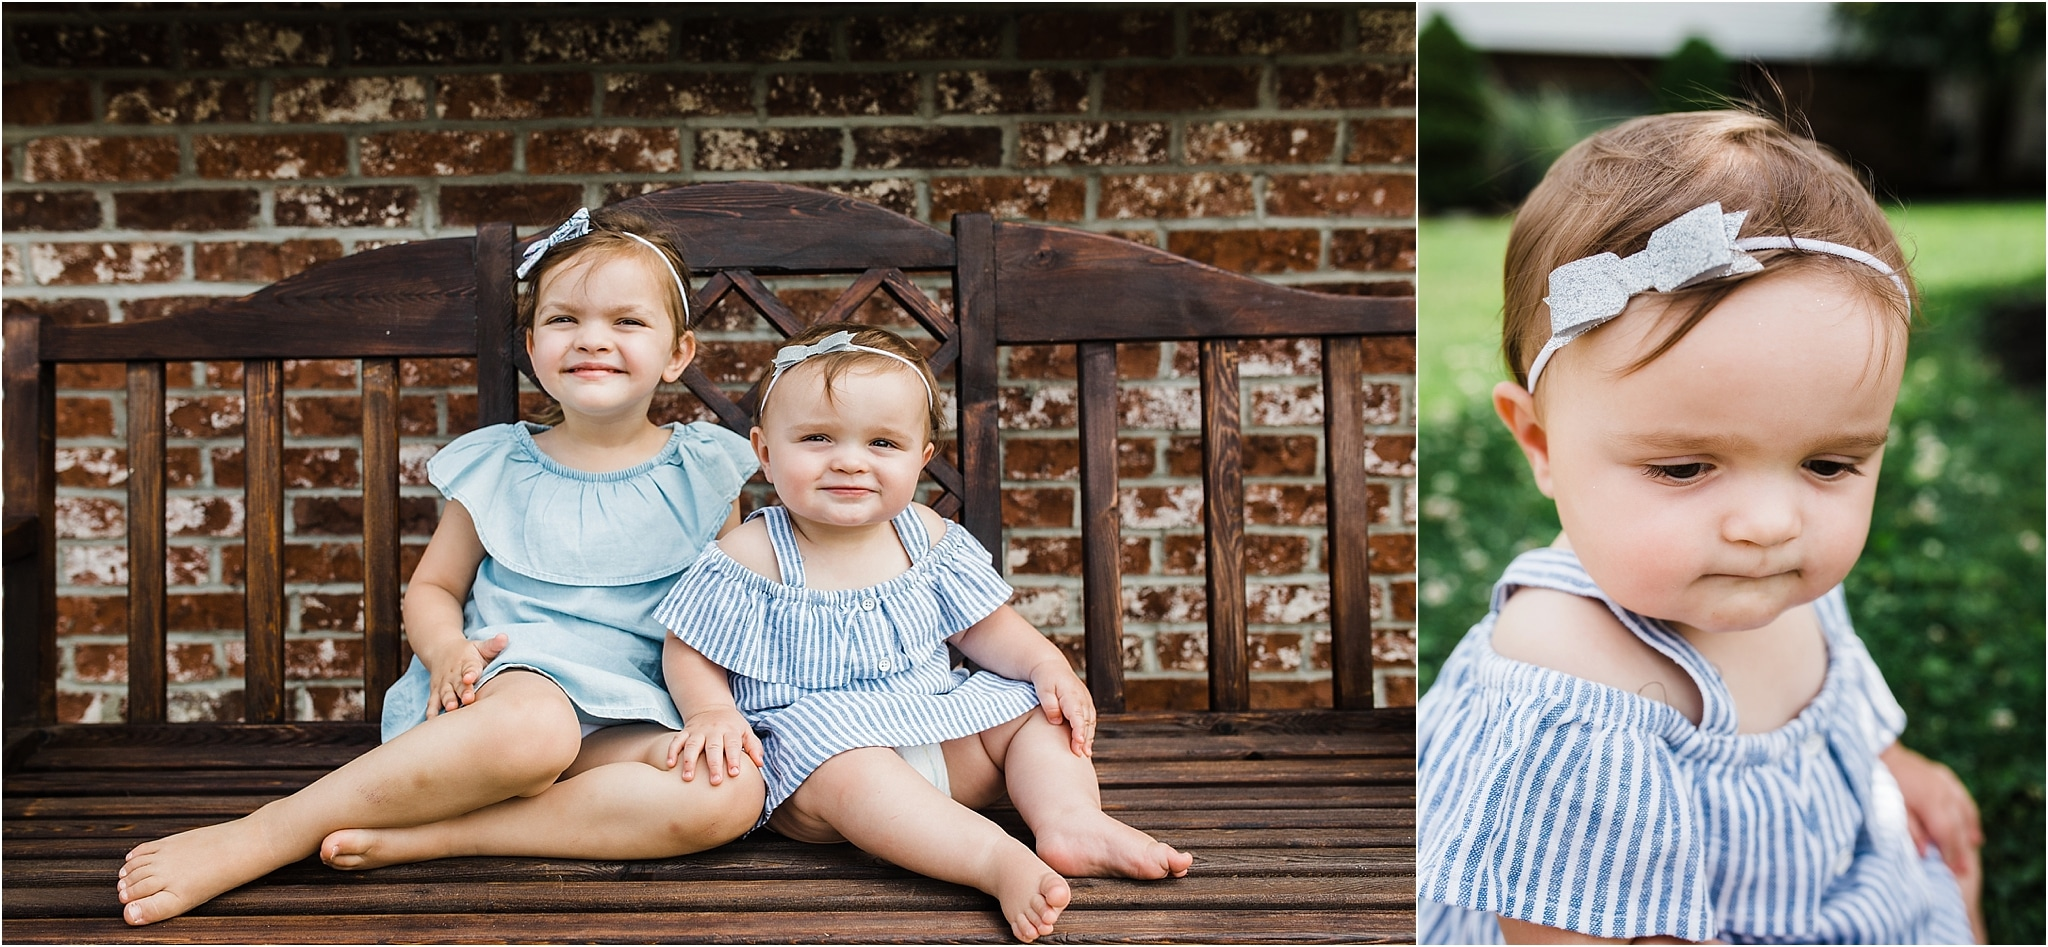 sibling sisters in adorable boys and dresses